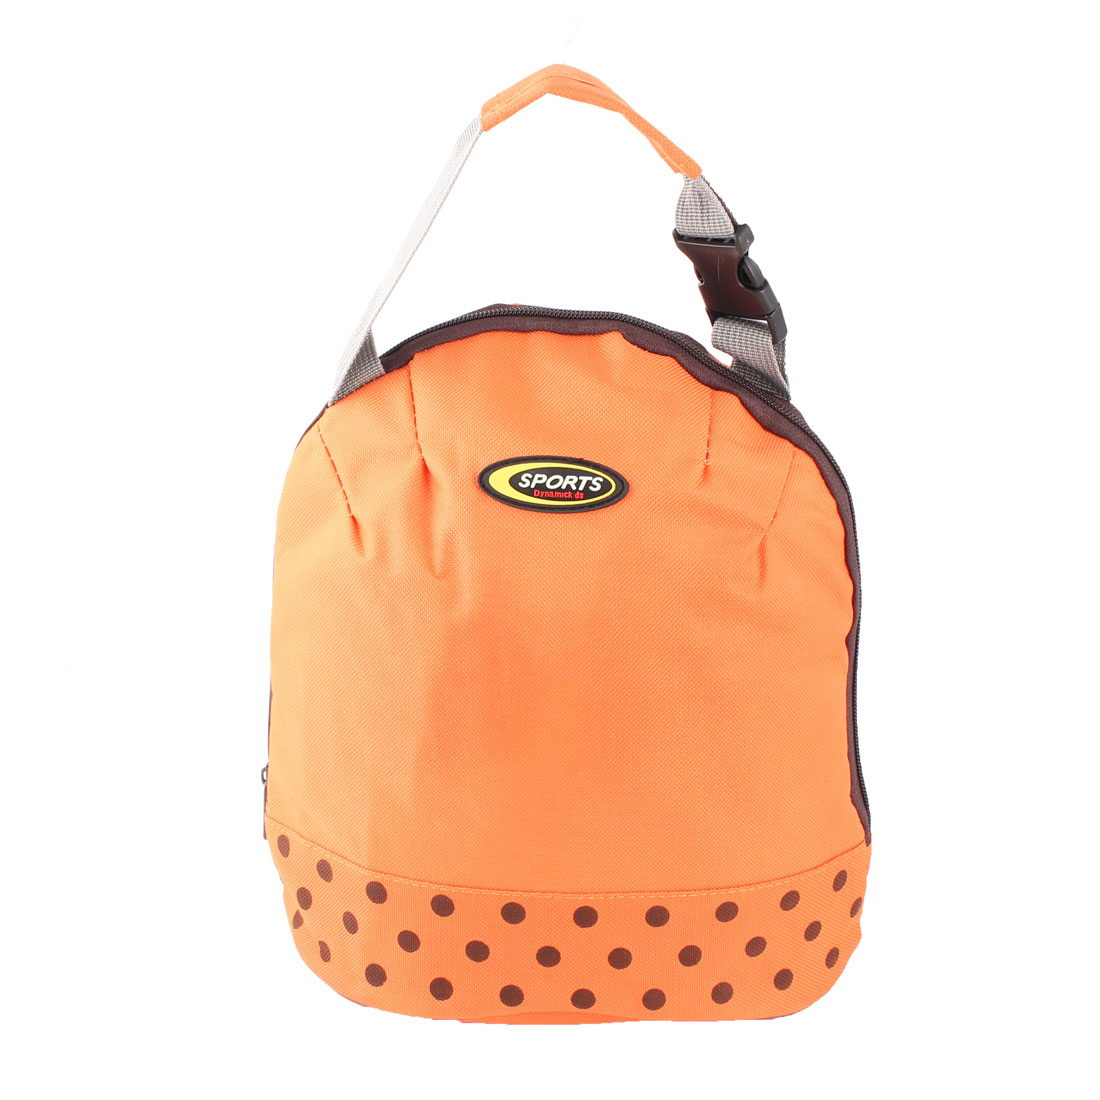 Picnic Travel Insulated Thermal Cooler Box Carry Tote Lunch Storage Bento Bag Orange